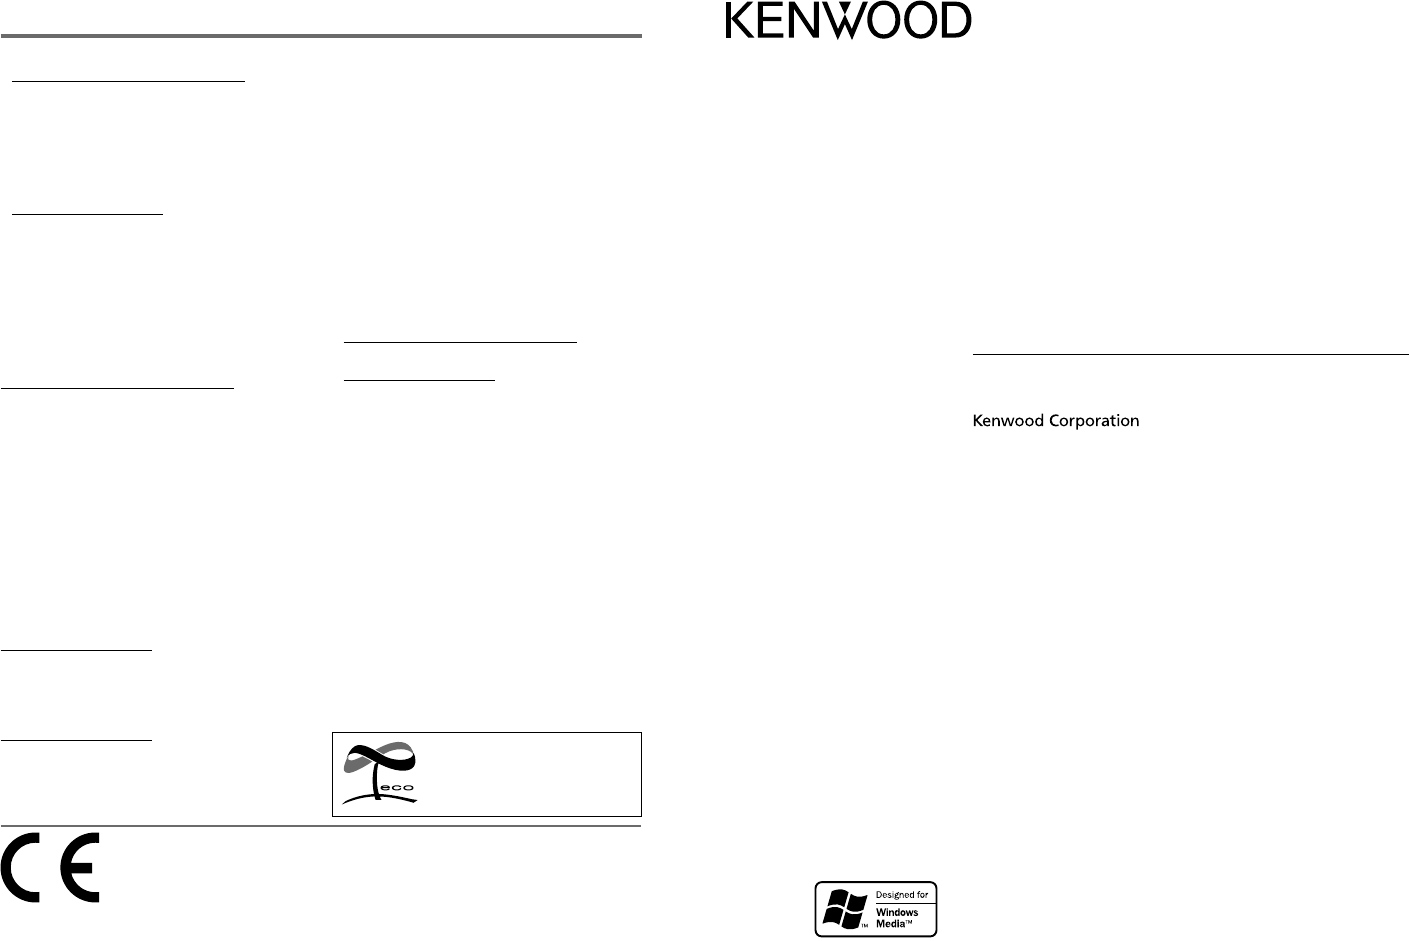 9f1ce1da c45f 4ce9 b247 6e85c2df45fe bg1 kenwood car stereo system kdc mp249 user guide manualsonline com kenwood kdc-mp149 wiring diagram at pacquiaovsvargaslive.co